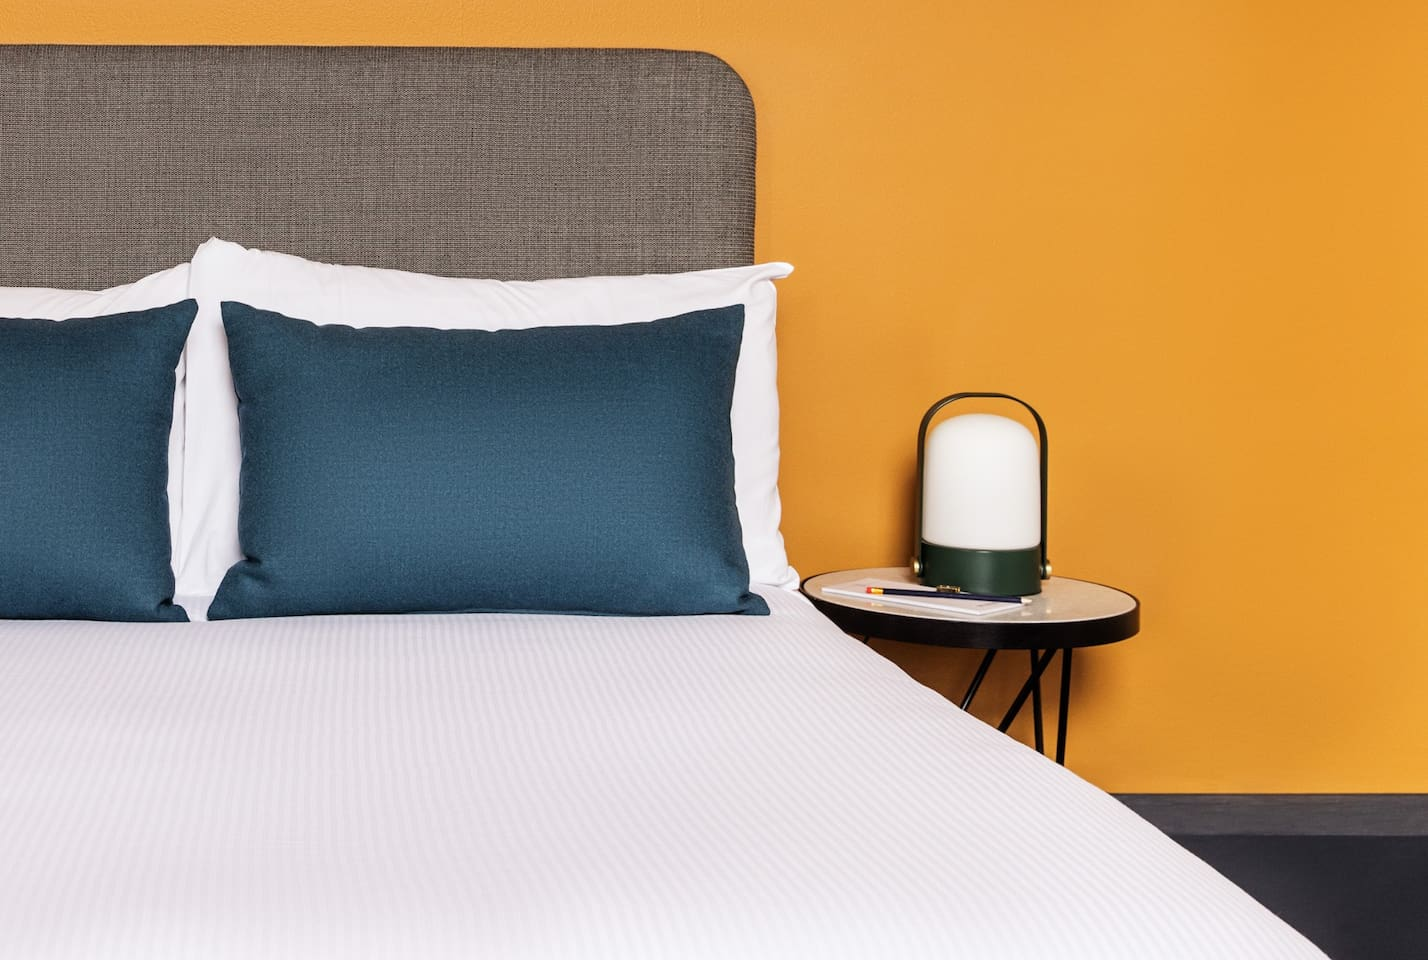 Our Compact Double Rooms of the comfort and convenience of being at home